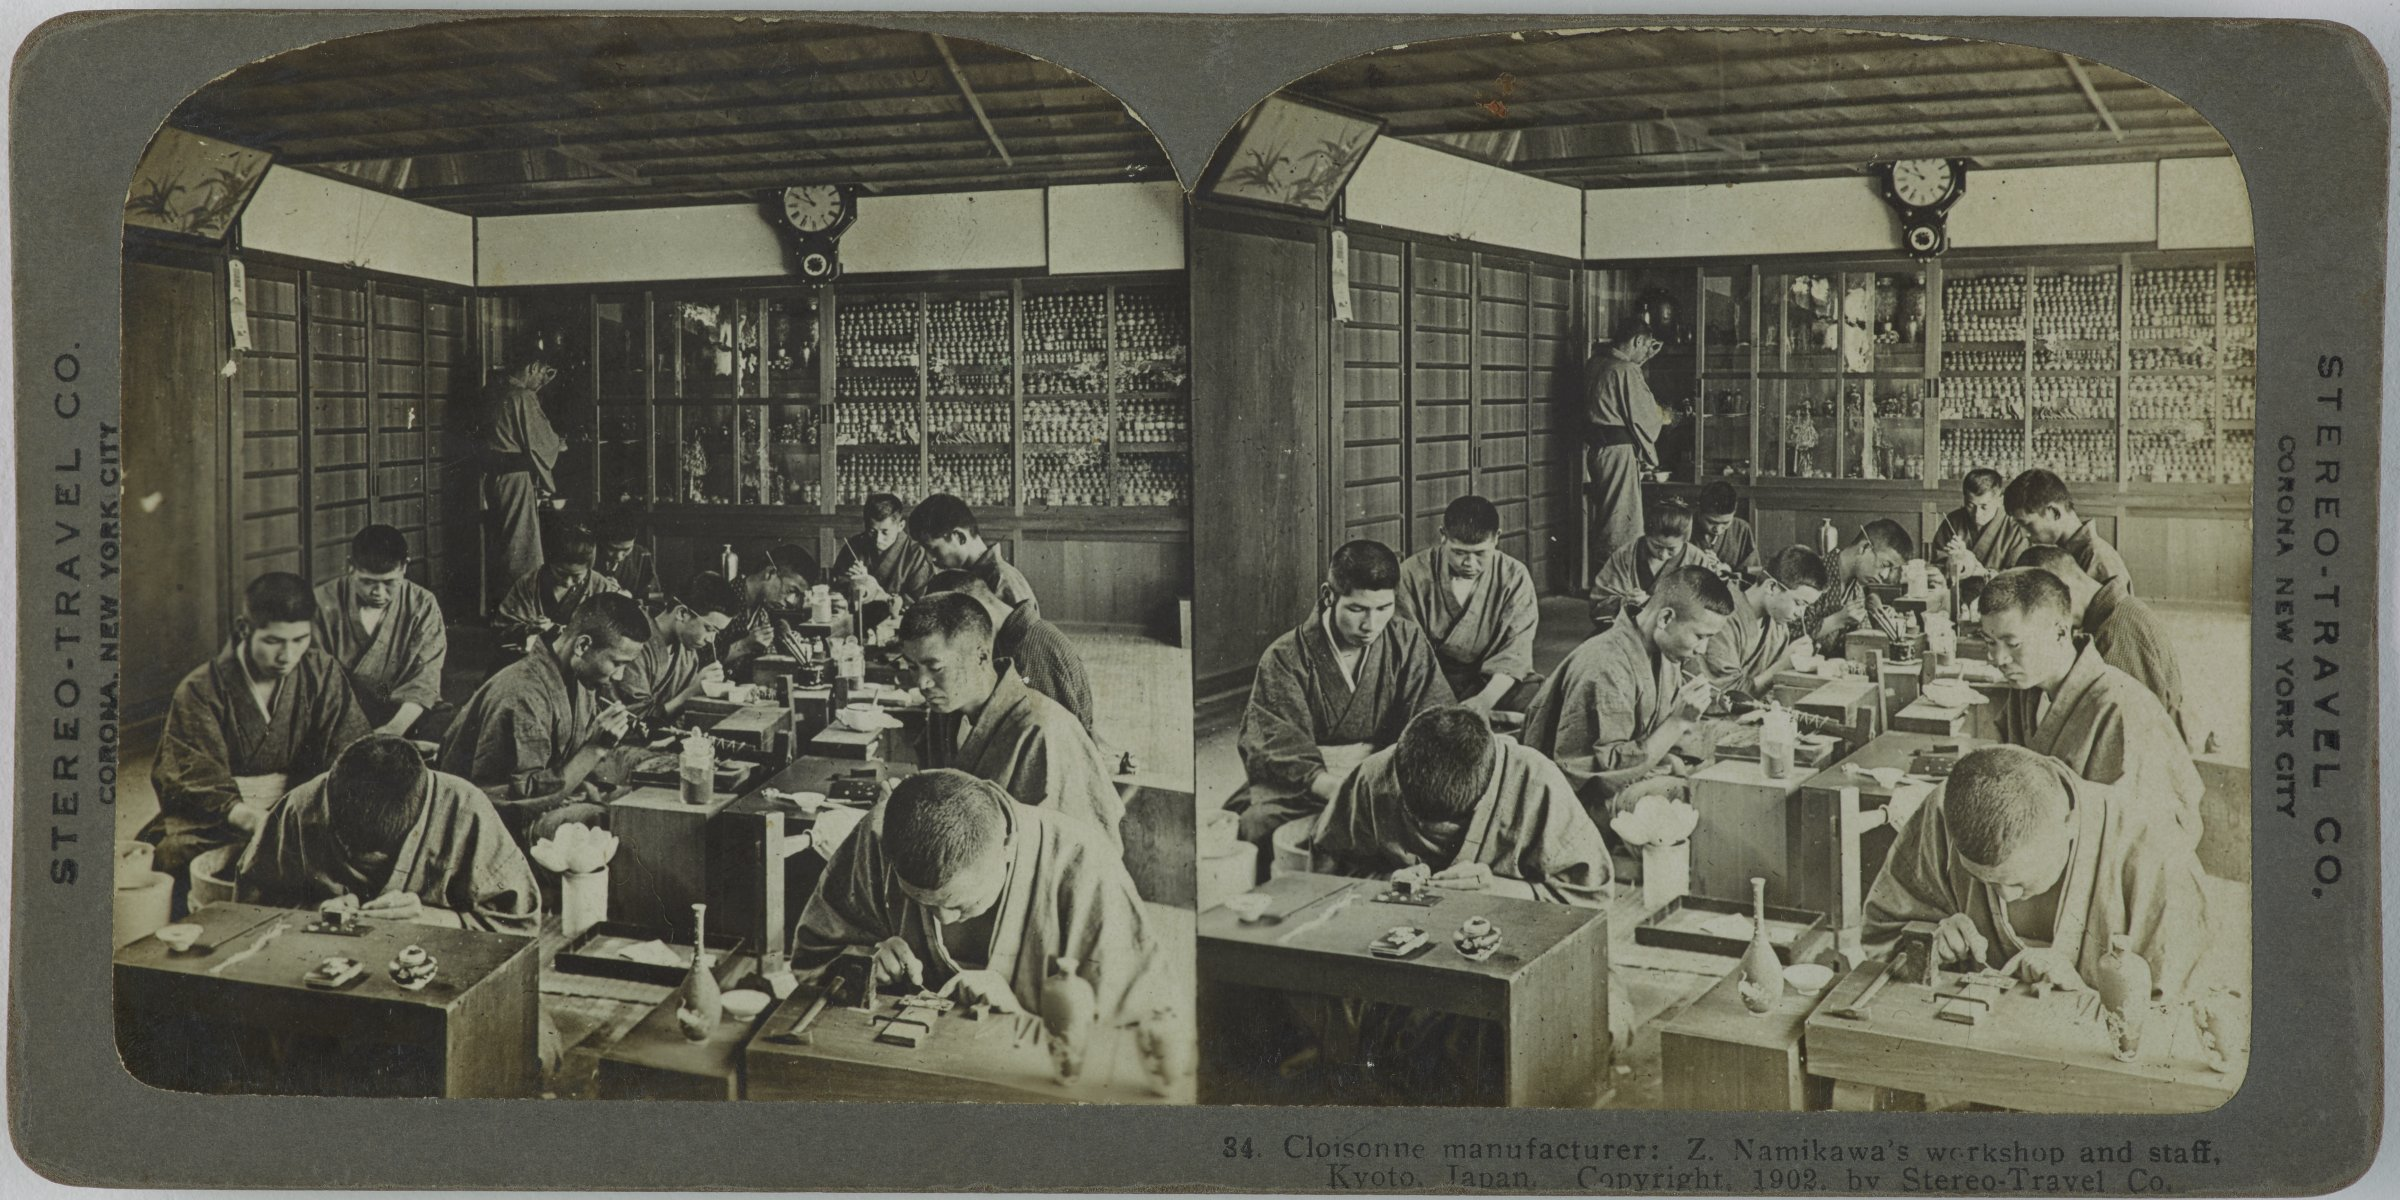 Cloisonne manufacturer: Z. Namikawa's workshop and staff, Kyoto, Japan, Stereo-Travel Co., gelatin silver prints mounted on card